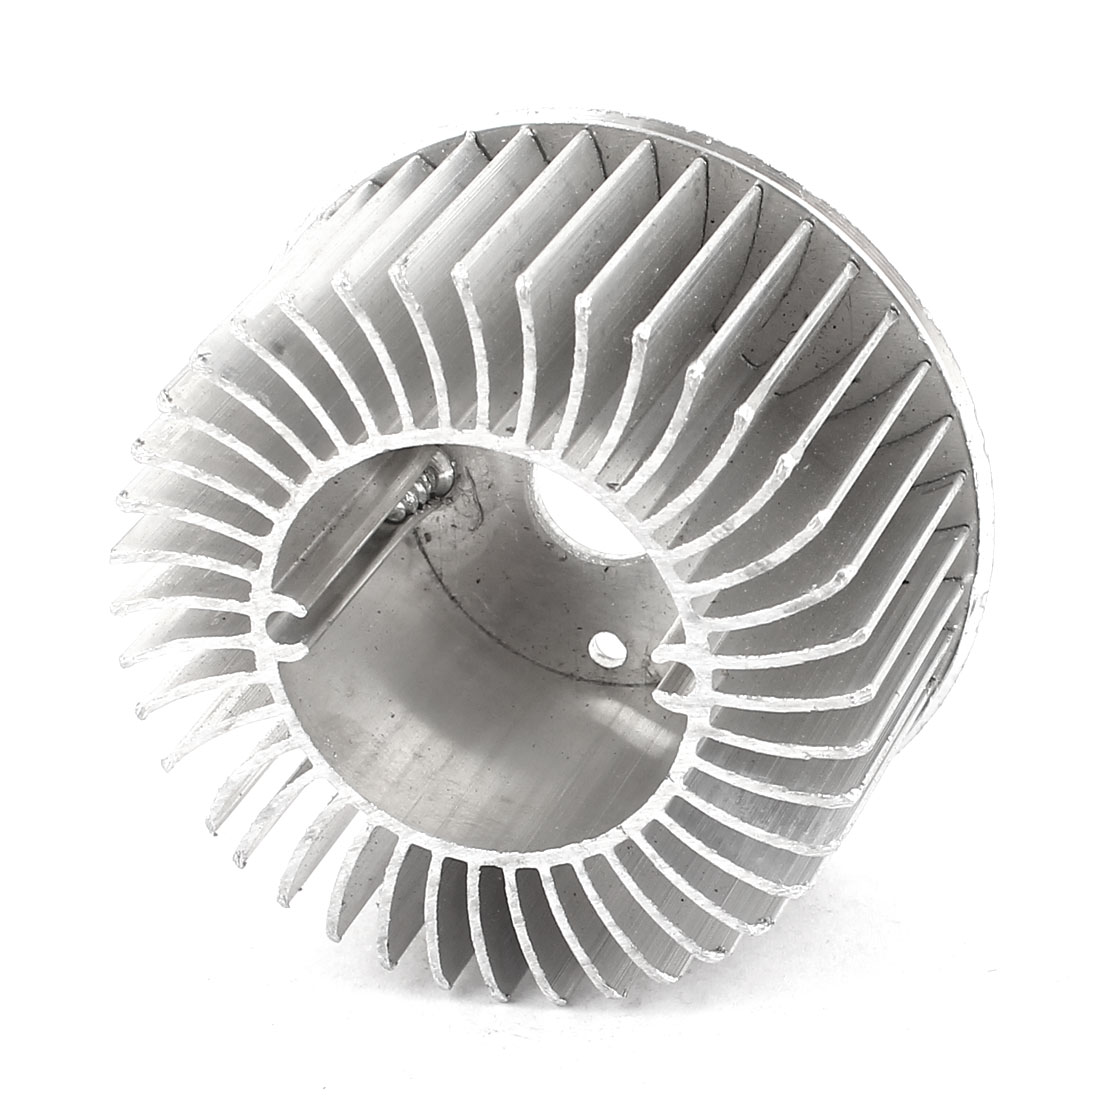 52mm x 26mm Cylinder 5W High Power LED Heatsink Aluminium Cooling Fin